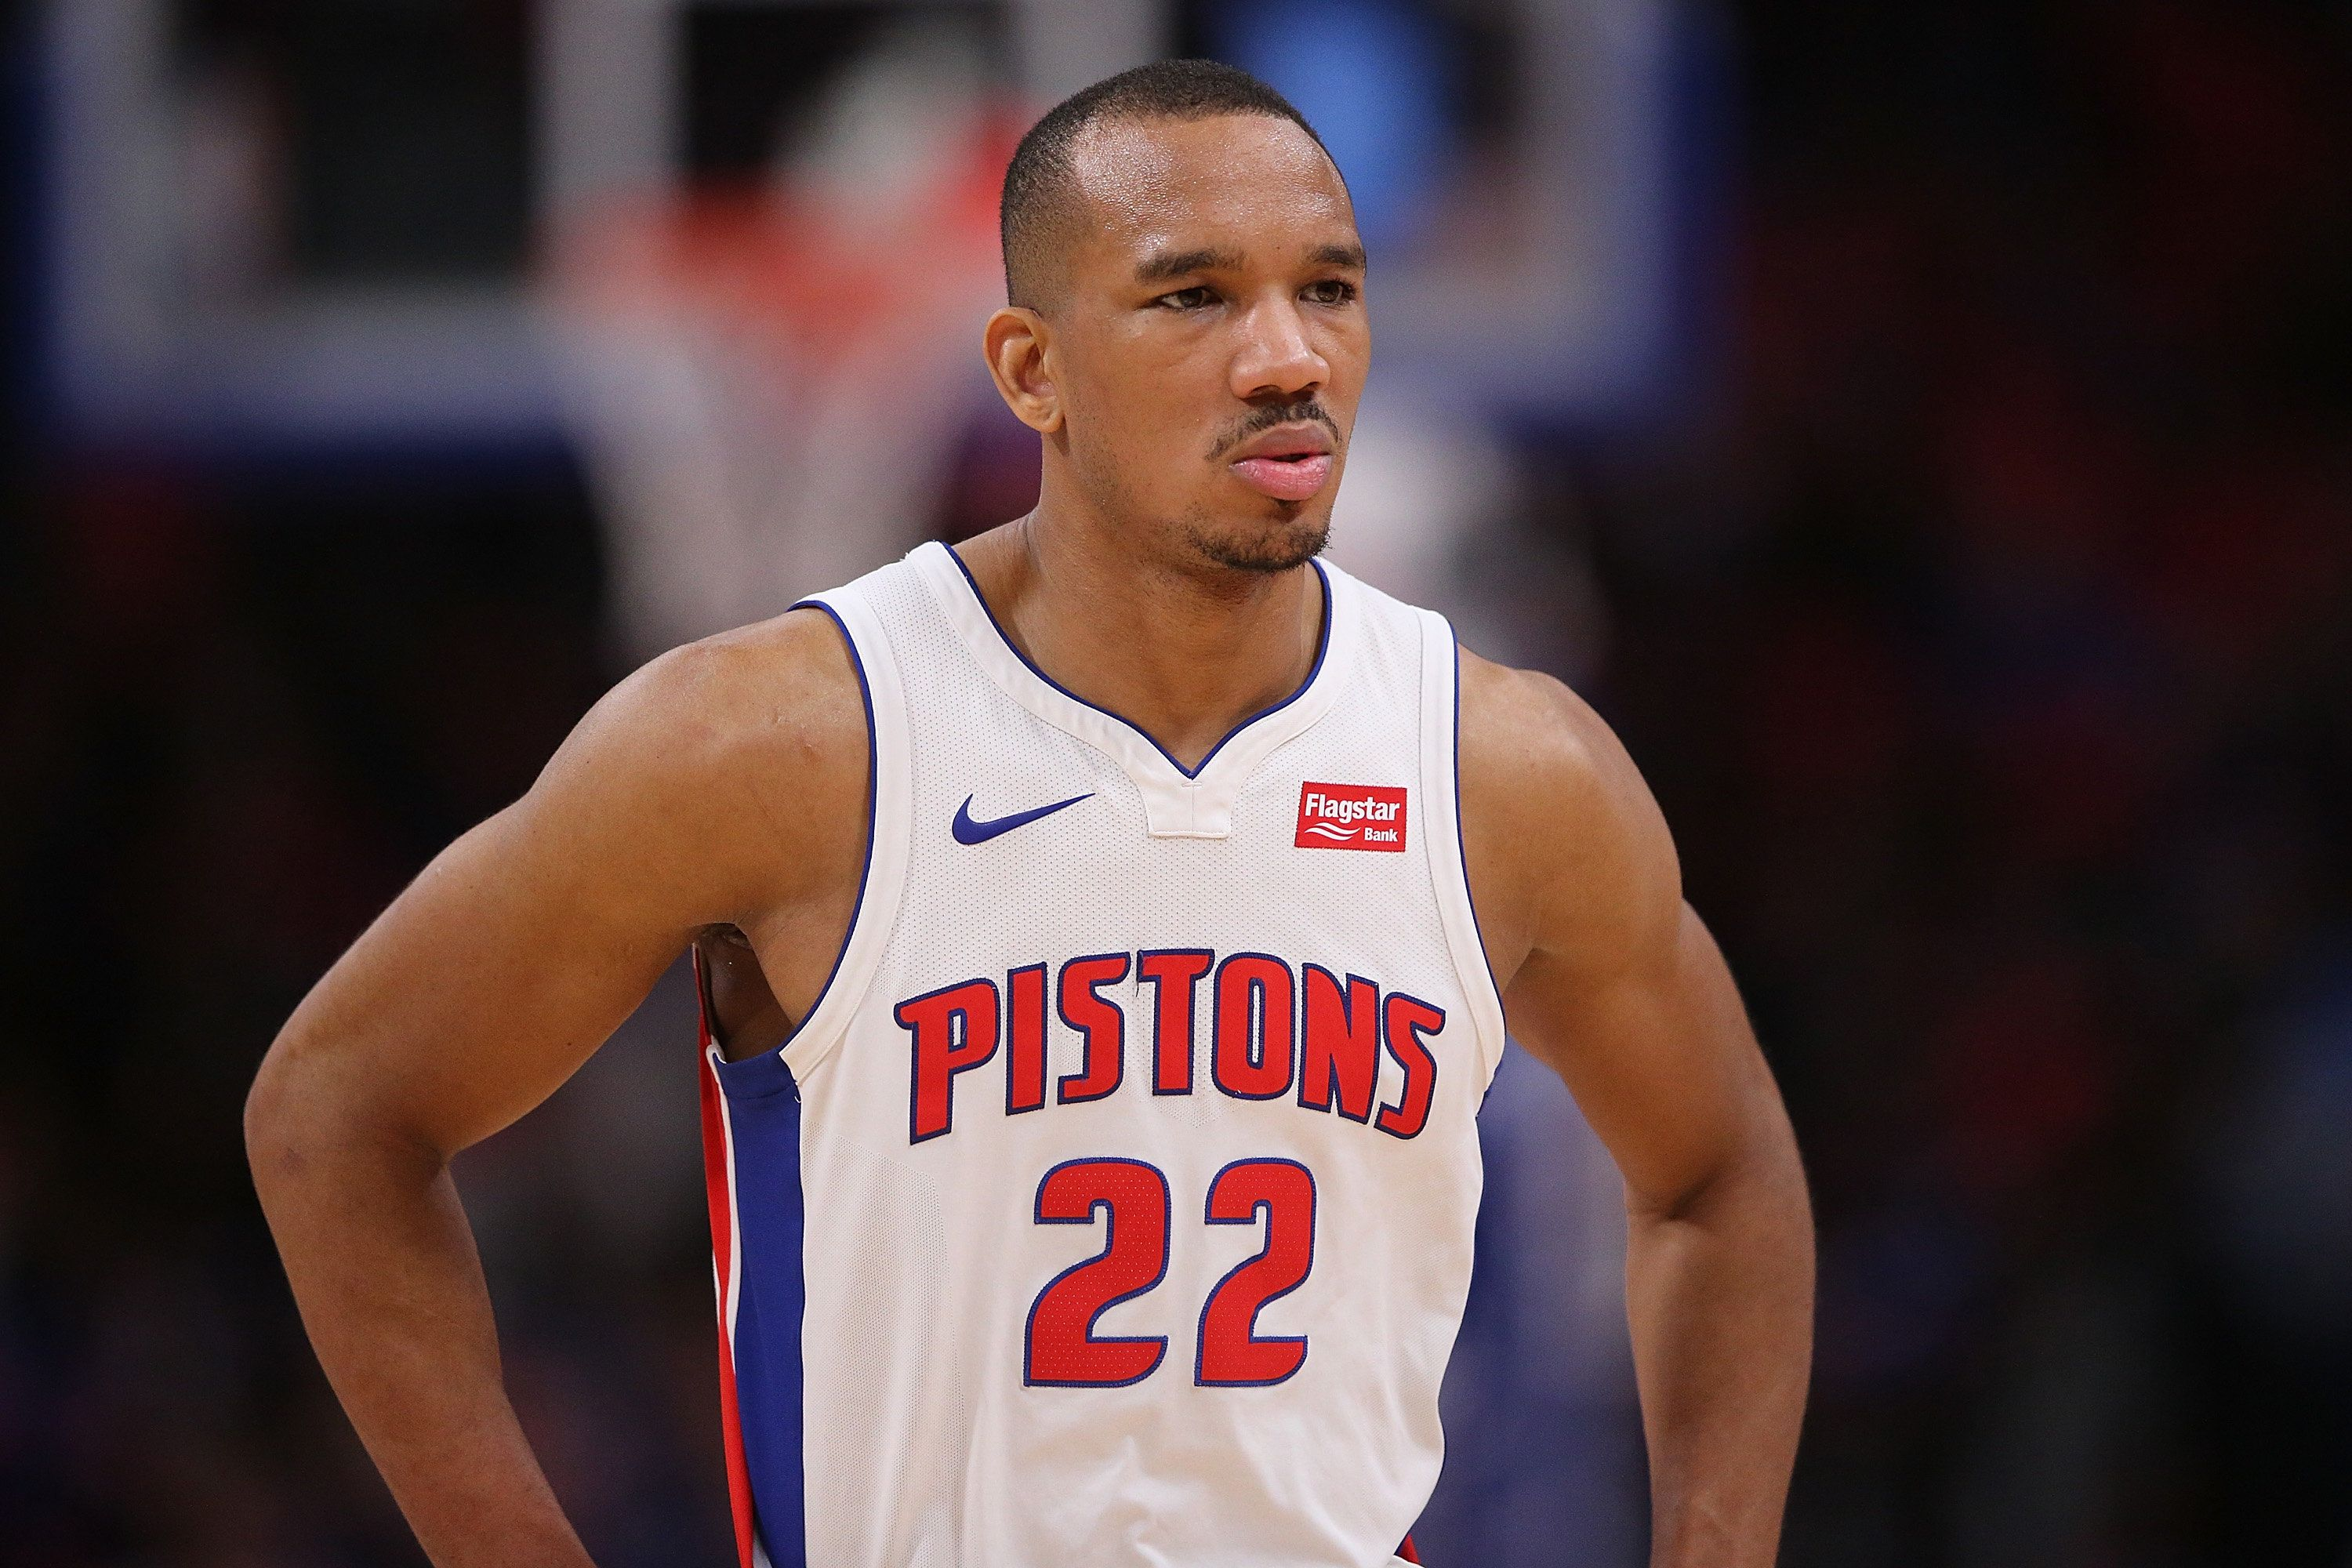 Avery Bradley was accused of sexually assaulting a woman in May 2017.